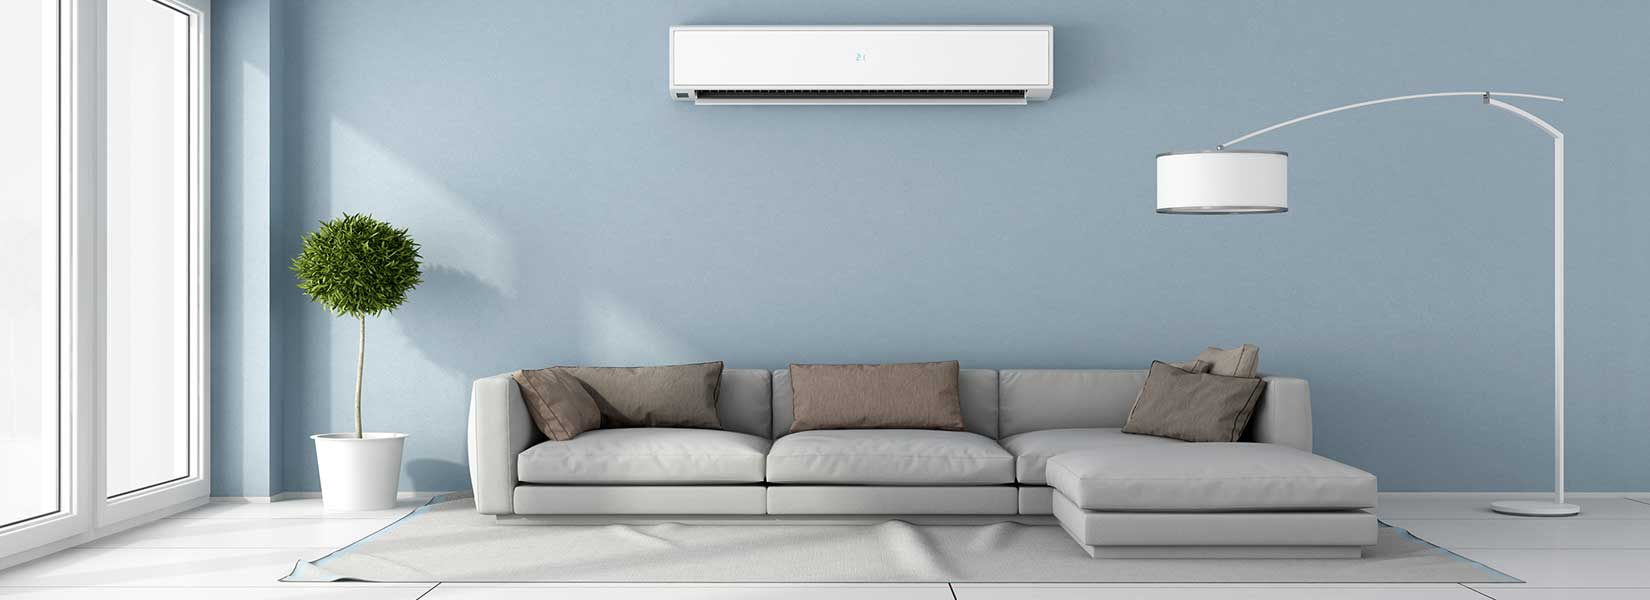 Common Air Conditioner Facts And Myths